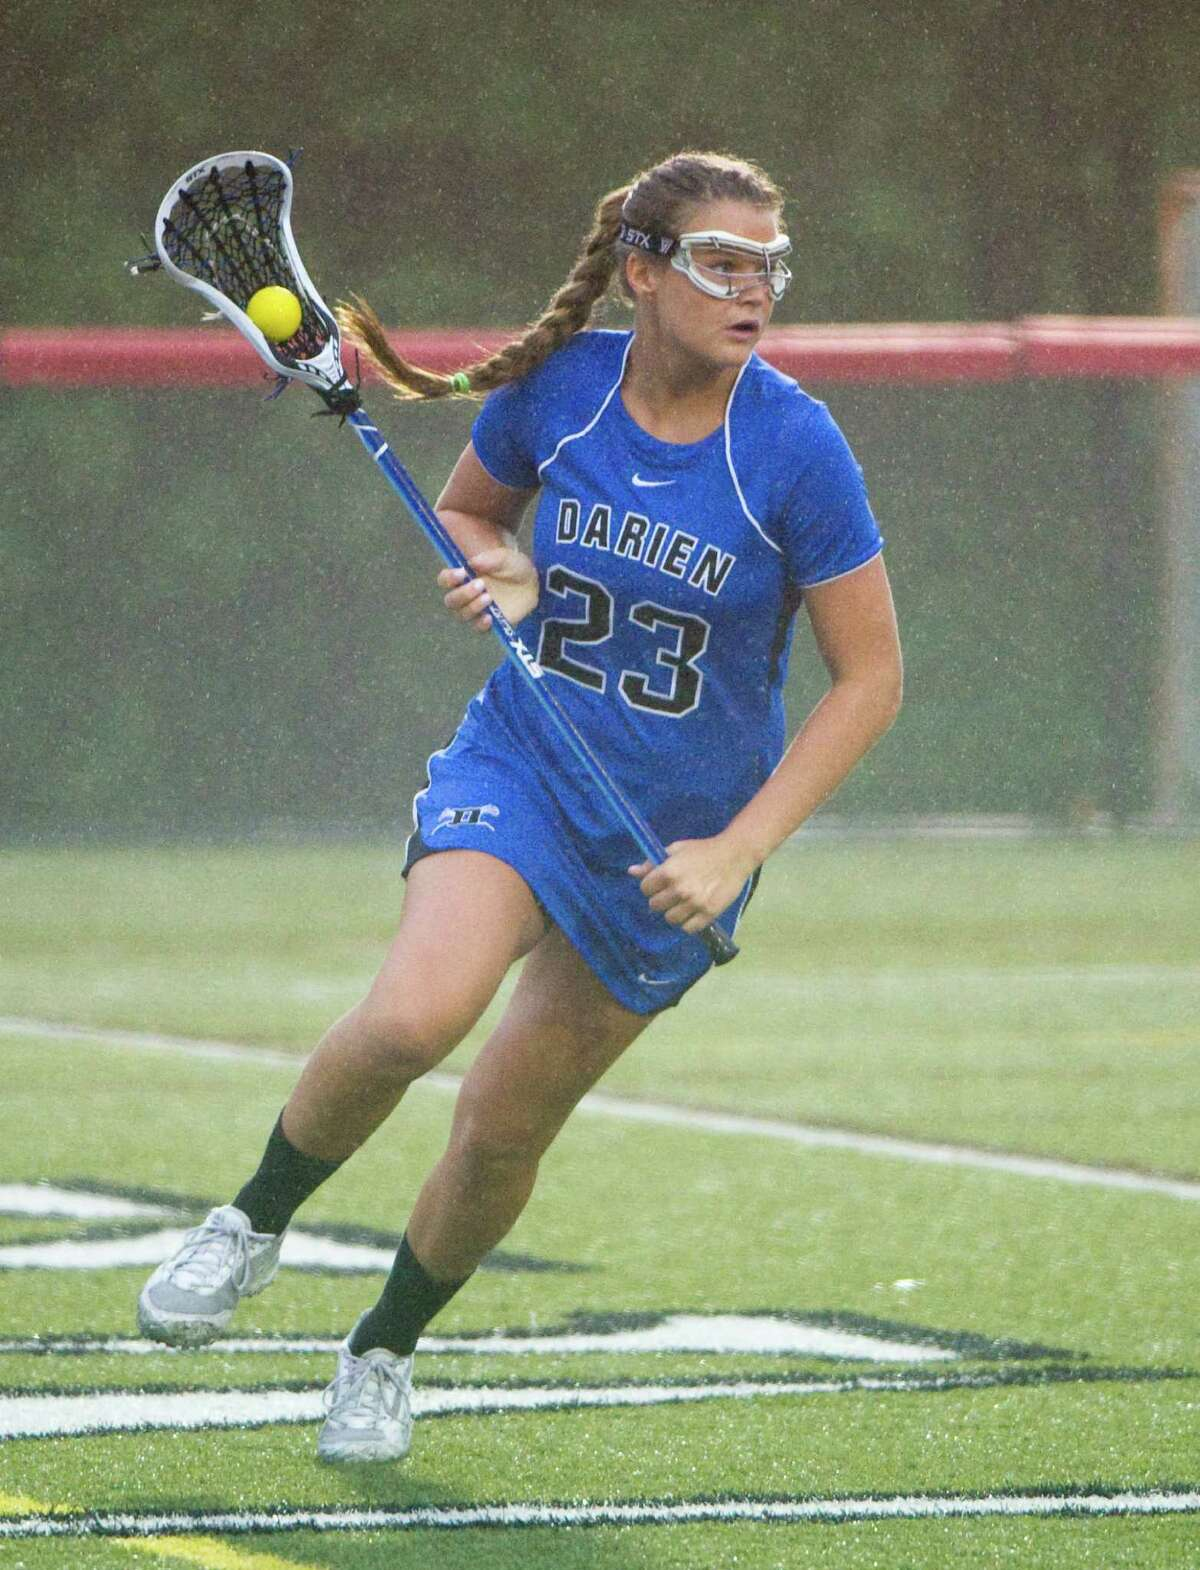 Dairne's Charlett Stevenson in action as New Canaan and Darien face off in the FCIAC Girls Lacrosse Semifinals at Dunning Field in New Canaan, Conn., May 21, 2012.